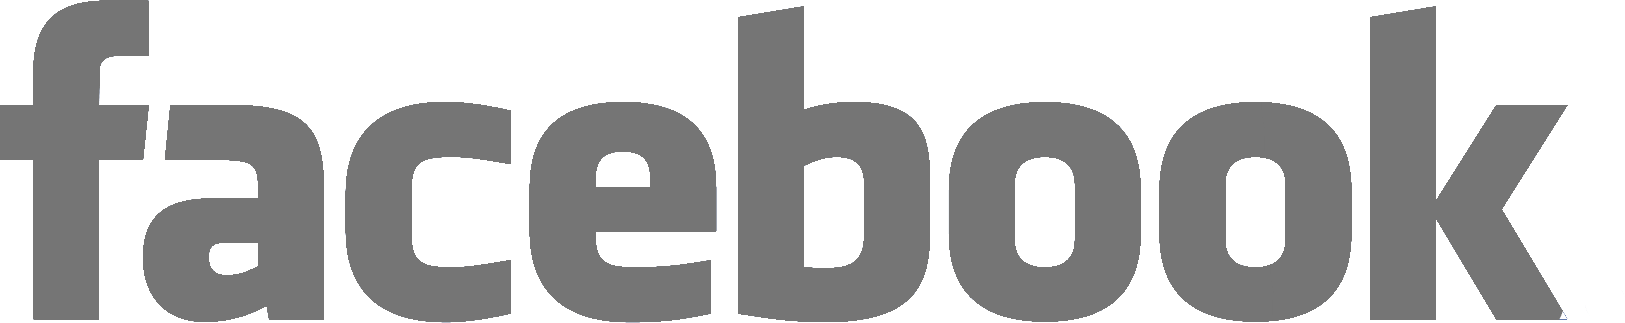 facebook-name-logo